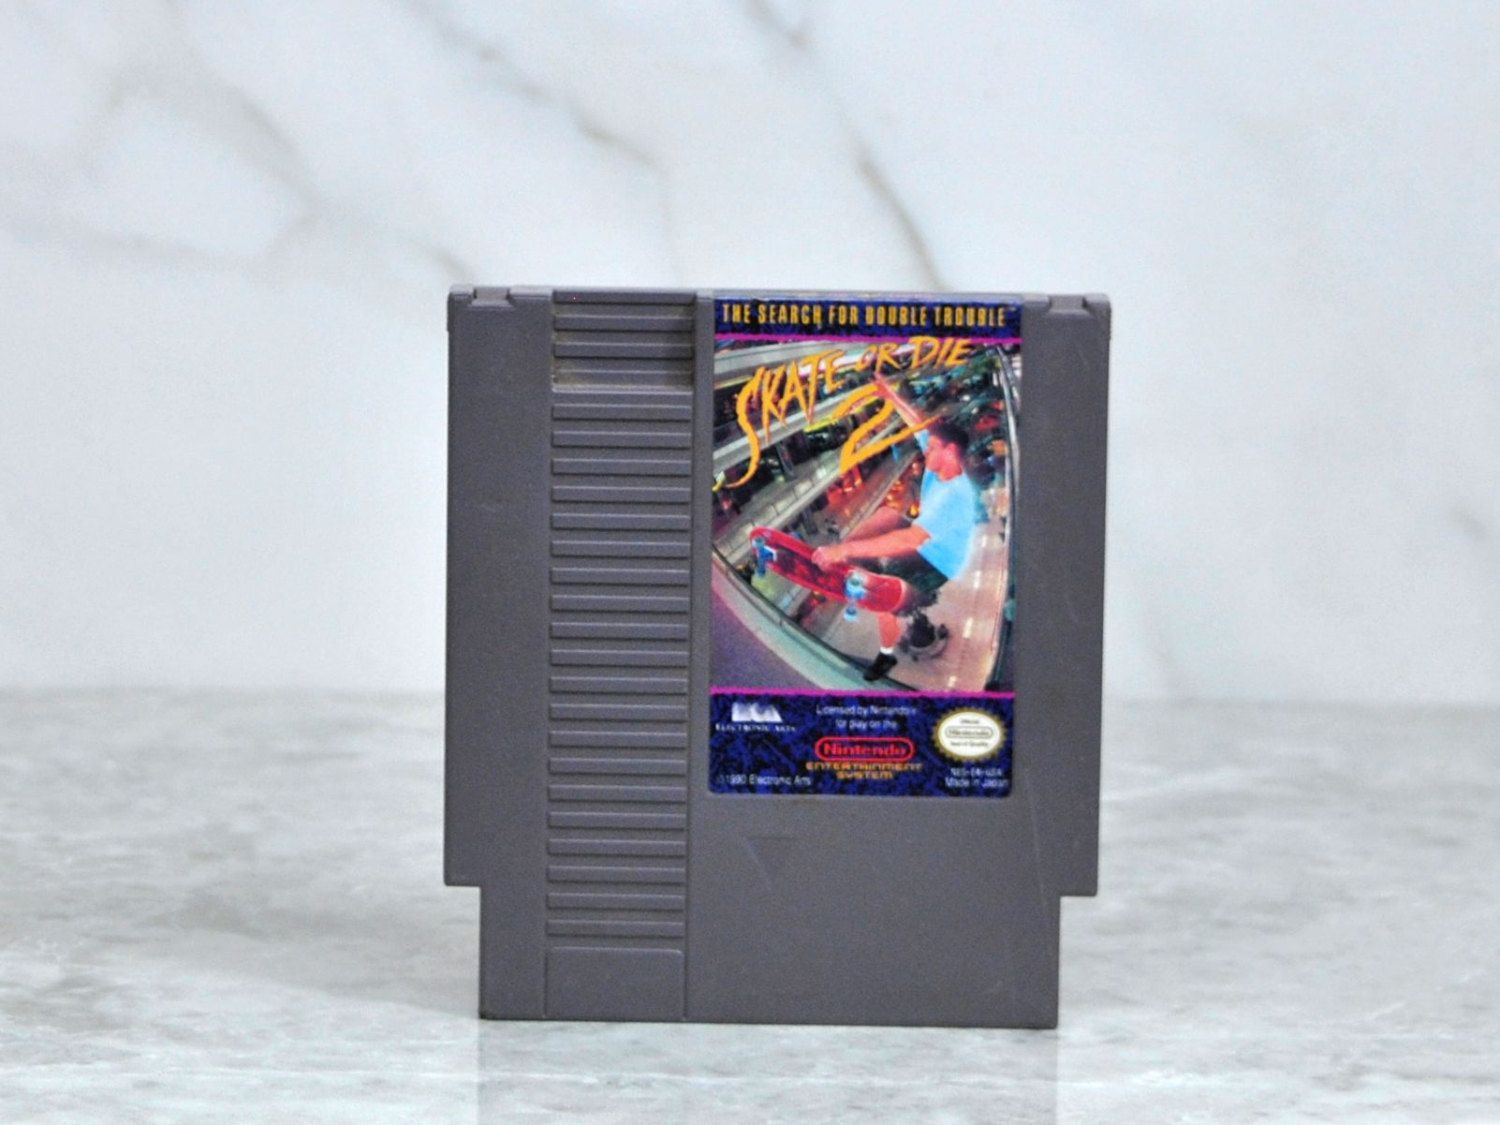 Vintage Nintendo Nes Game 8 Bit Skate Or Die 2 By Electronic Arts 1990 Double Trouble Skateboarding Paintball Nintendo Nes Games Nintendo Nes Nes Games